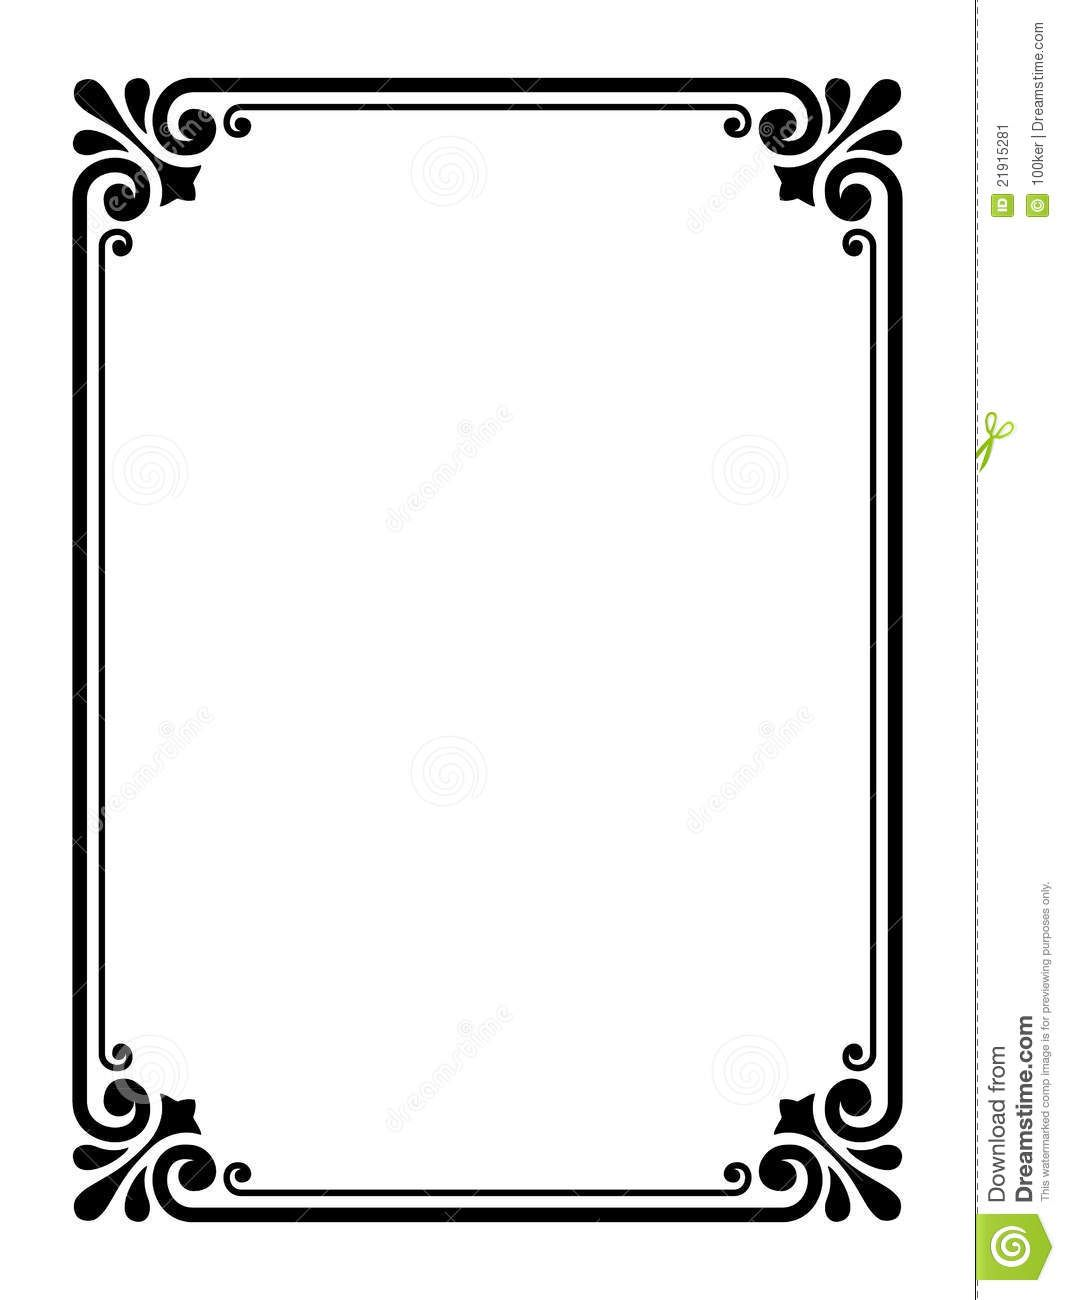 Simple Frame Clipart - Clipart Kid | House ideas ...